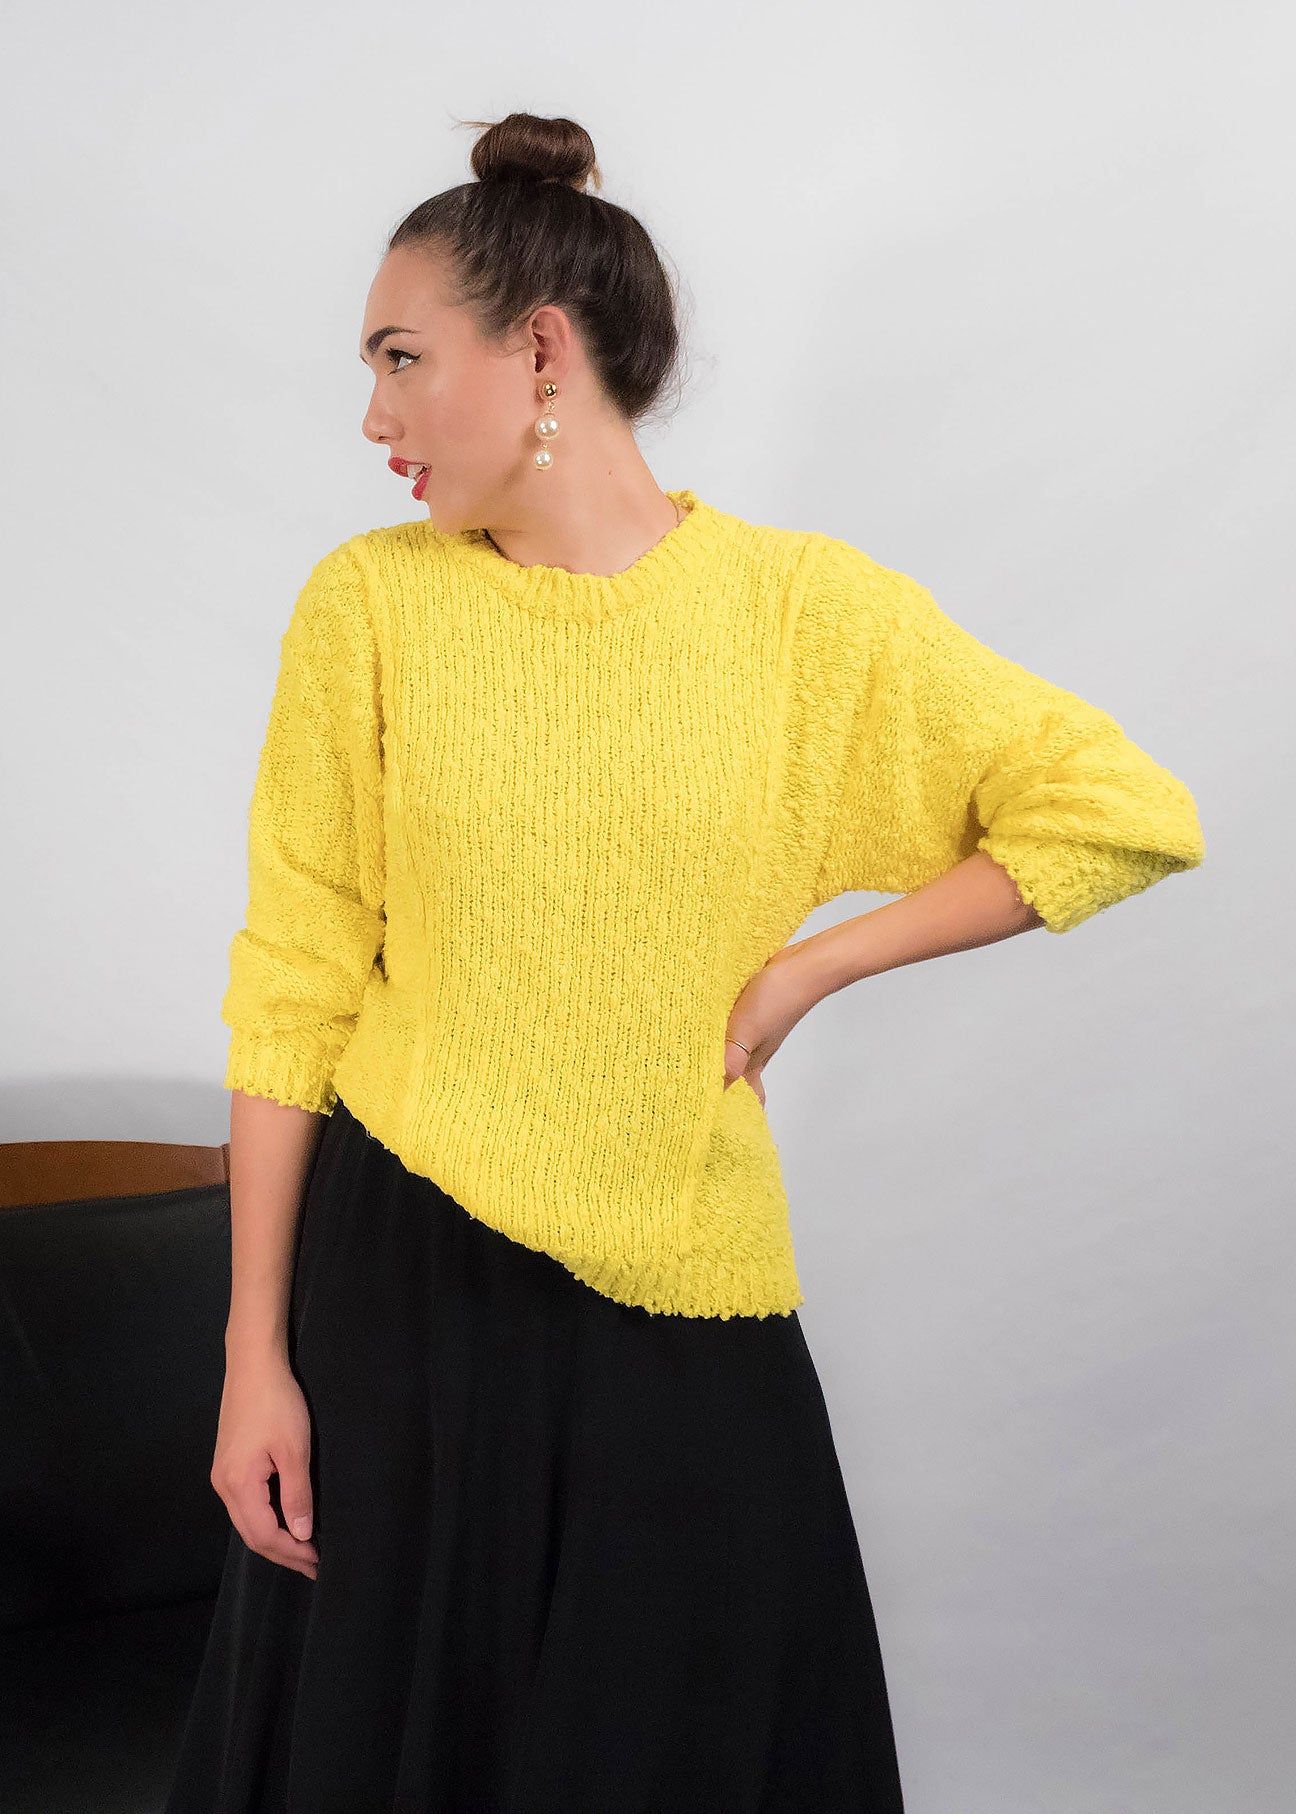 80s Neon Yellow Sweater